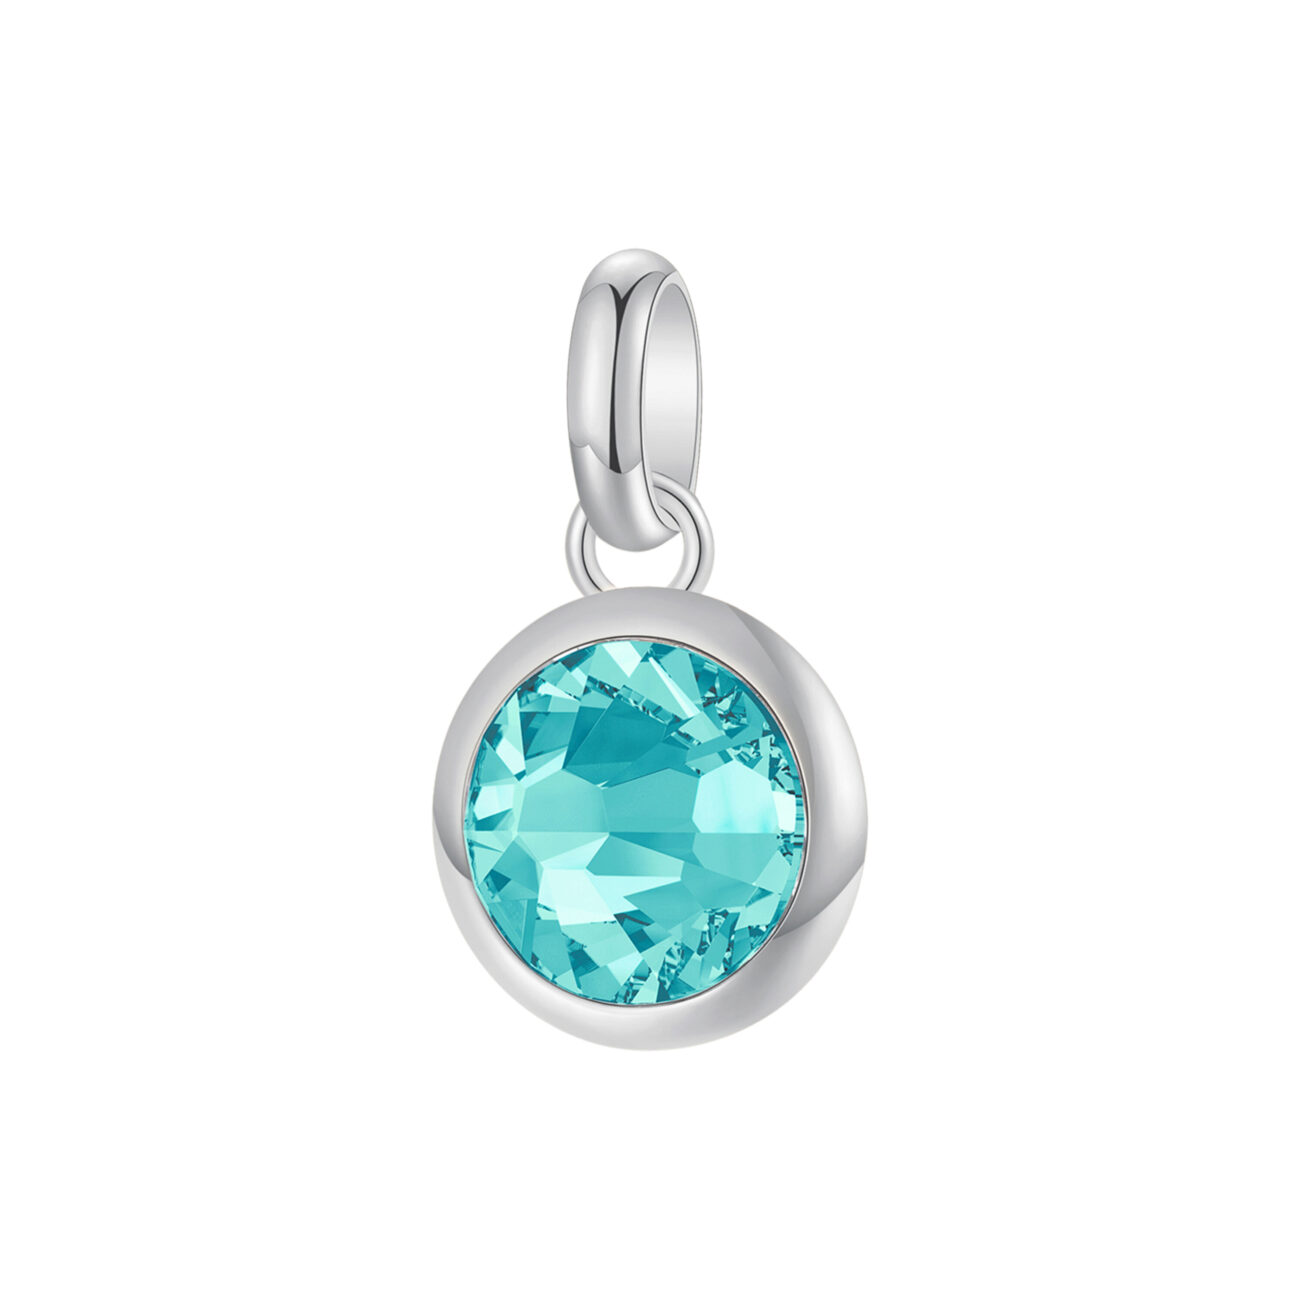 316L stainless steel beads and light turquoise Swarovski©crystal